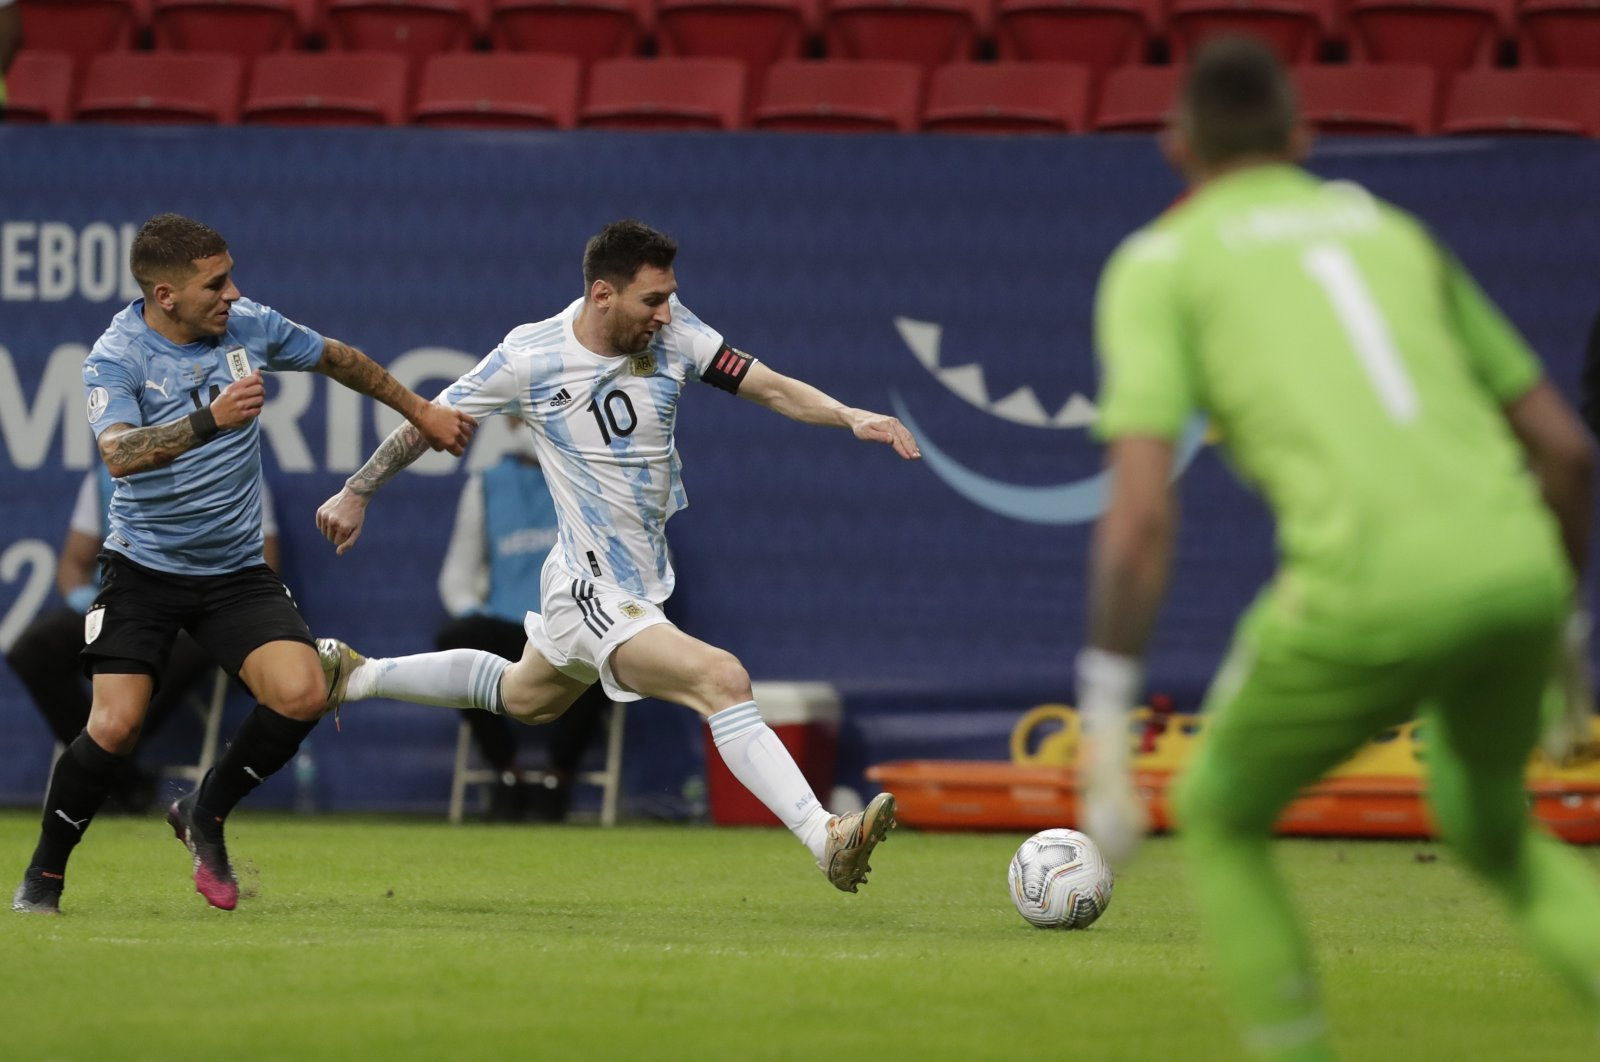 Uruguay's Lucas Torreira (L) tries to prevent Argentina's Lionel Messi (C) from dribbling past during a Copa America football match at Mané Garrincha Stadium in Brasilia, Brazil, June 18, 2021. (AP Photo)